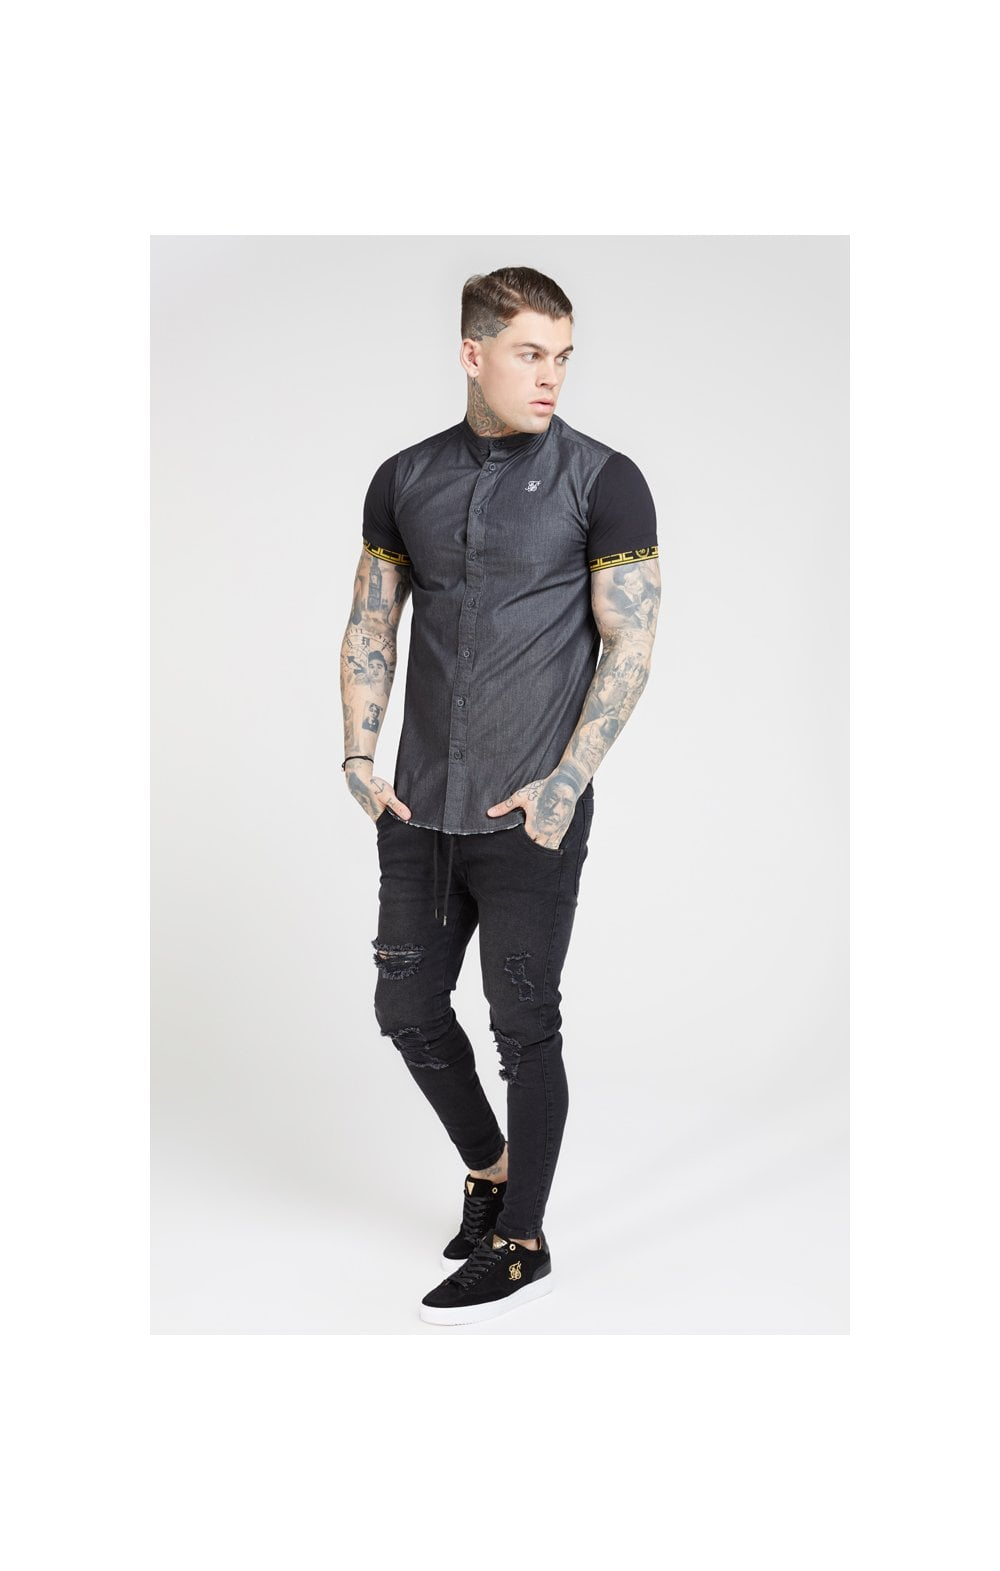 SikSilk S/S Denim Shirt – Black (3)